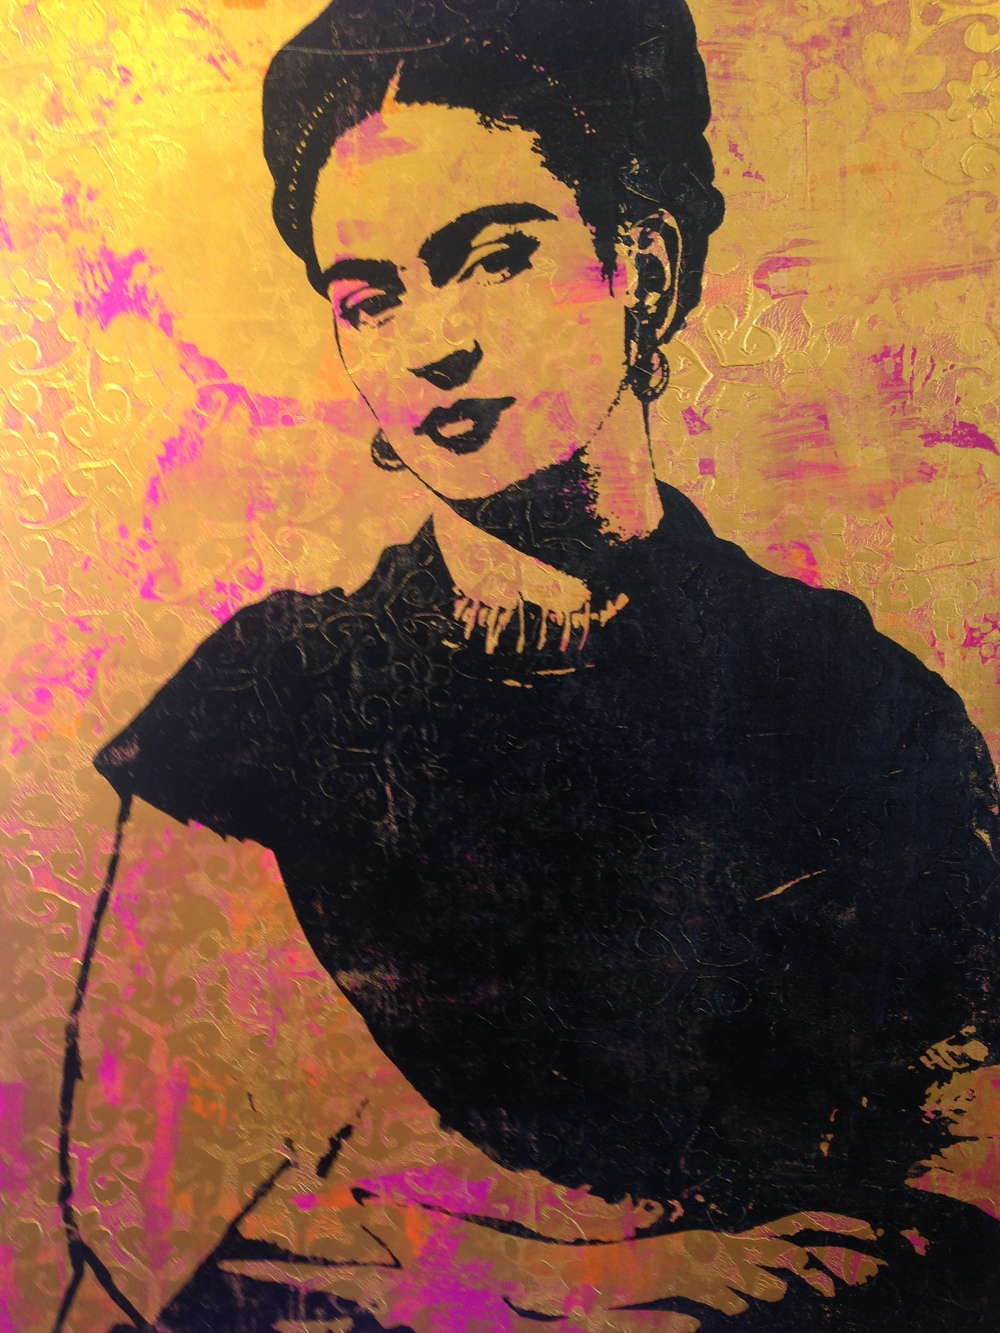 """Frida Kahlo"". Print by Georgia Barber."